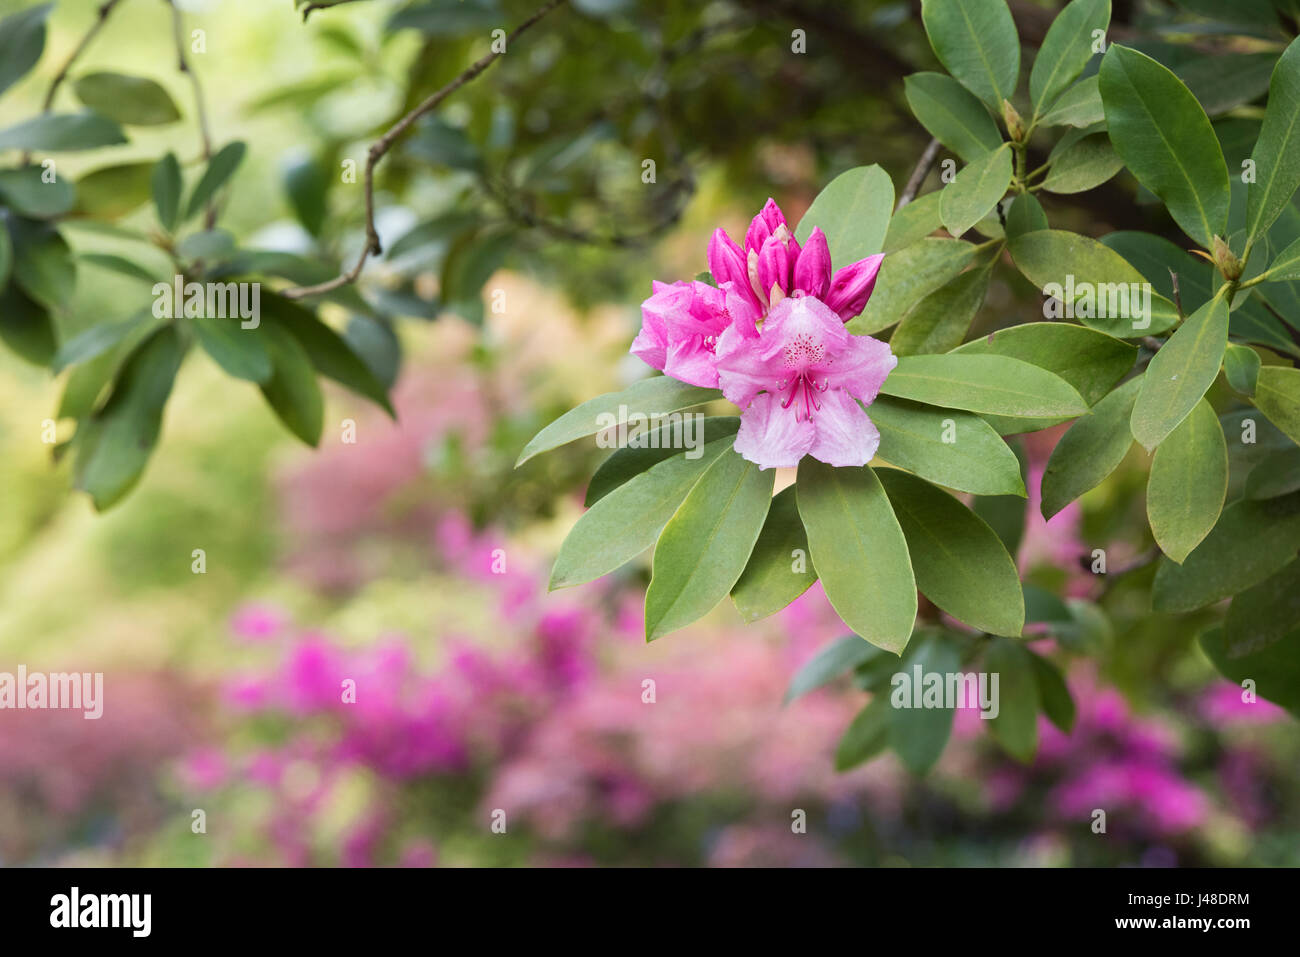 Rhododendron 'Pink pearl' flowering in spring. UK Stock Photo